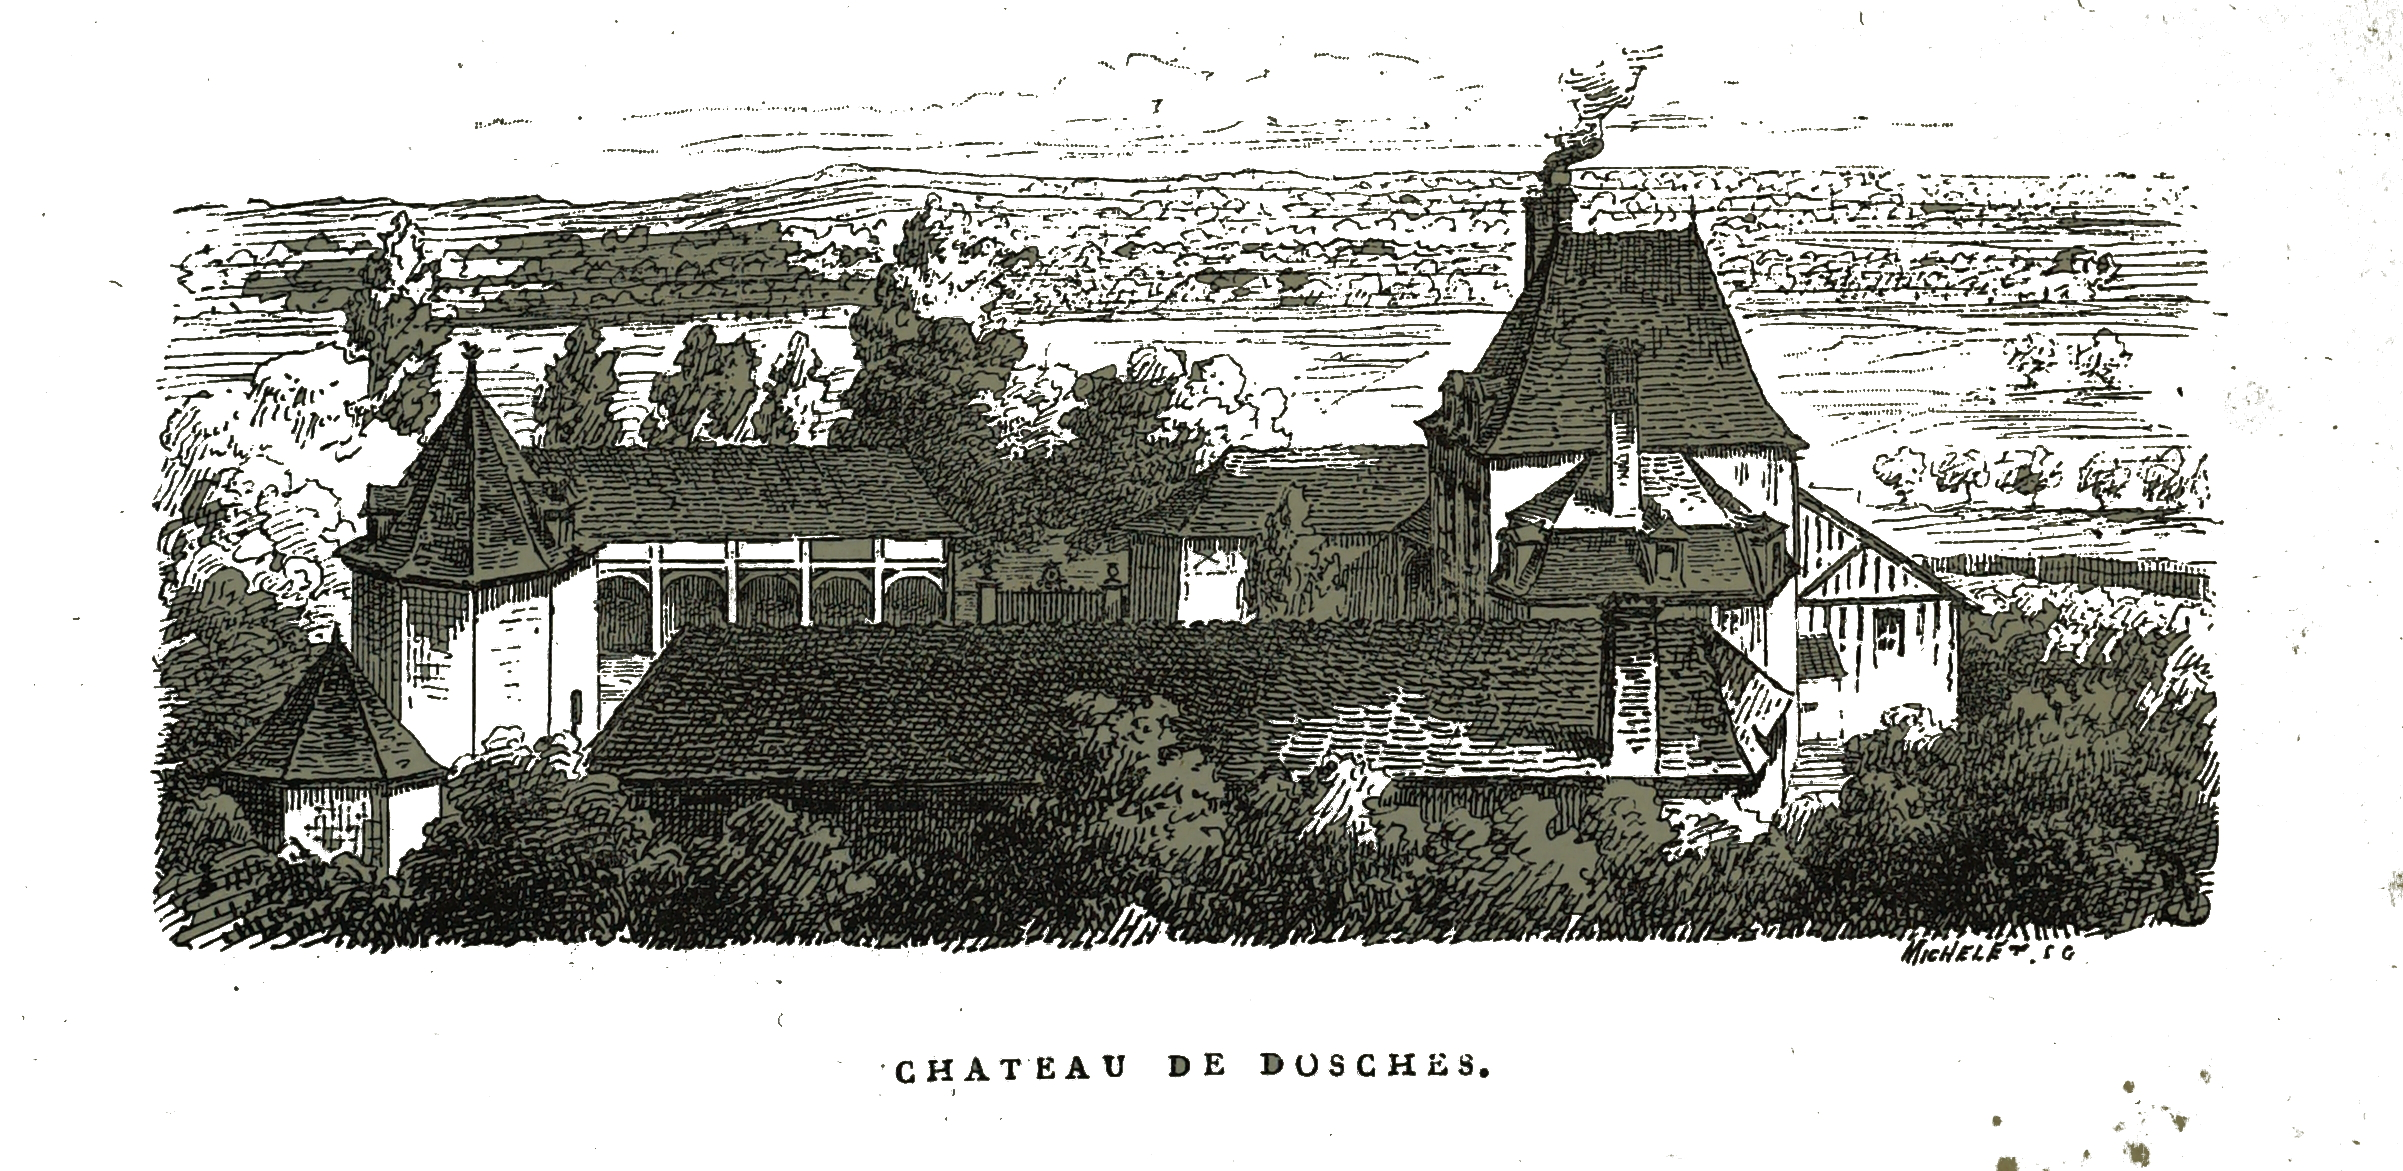 FileDoSChes Chateau 00488